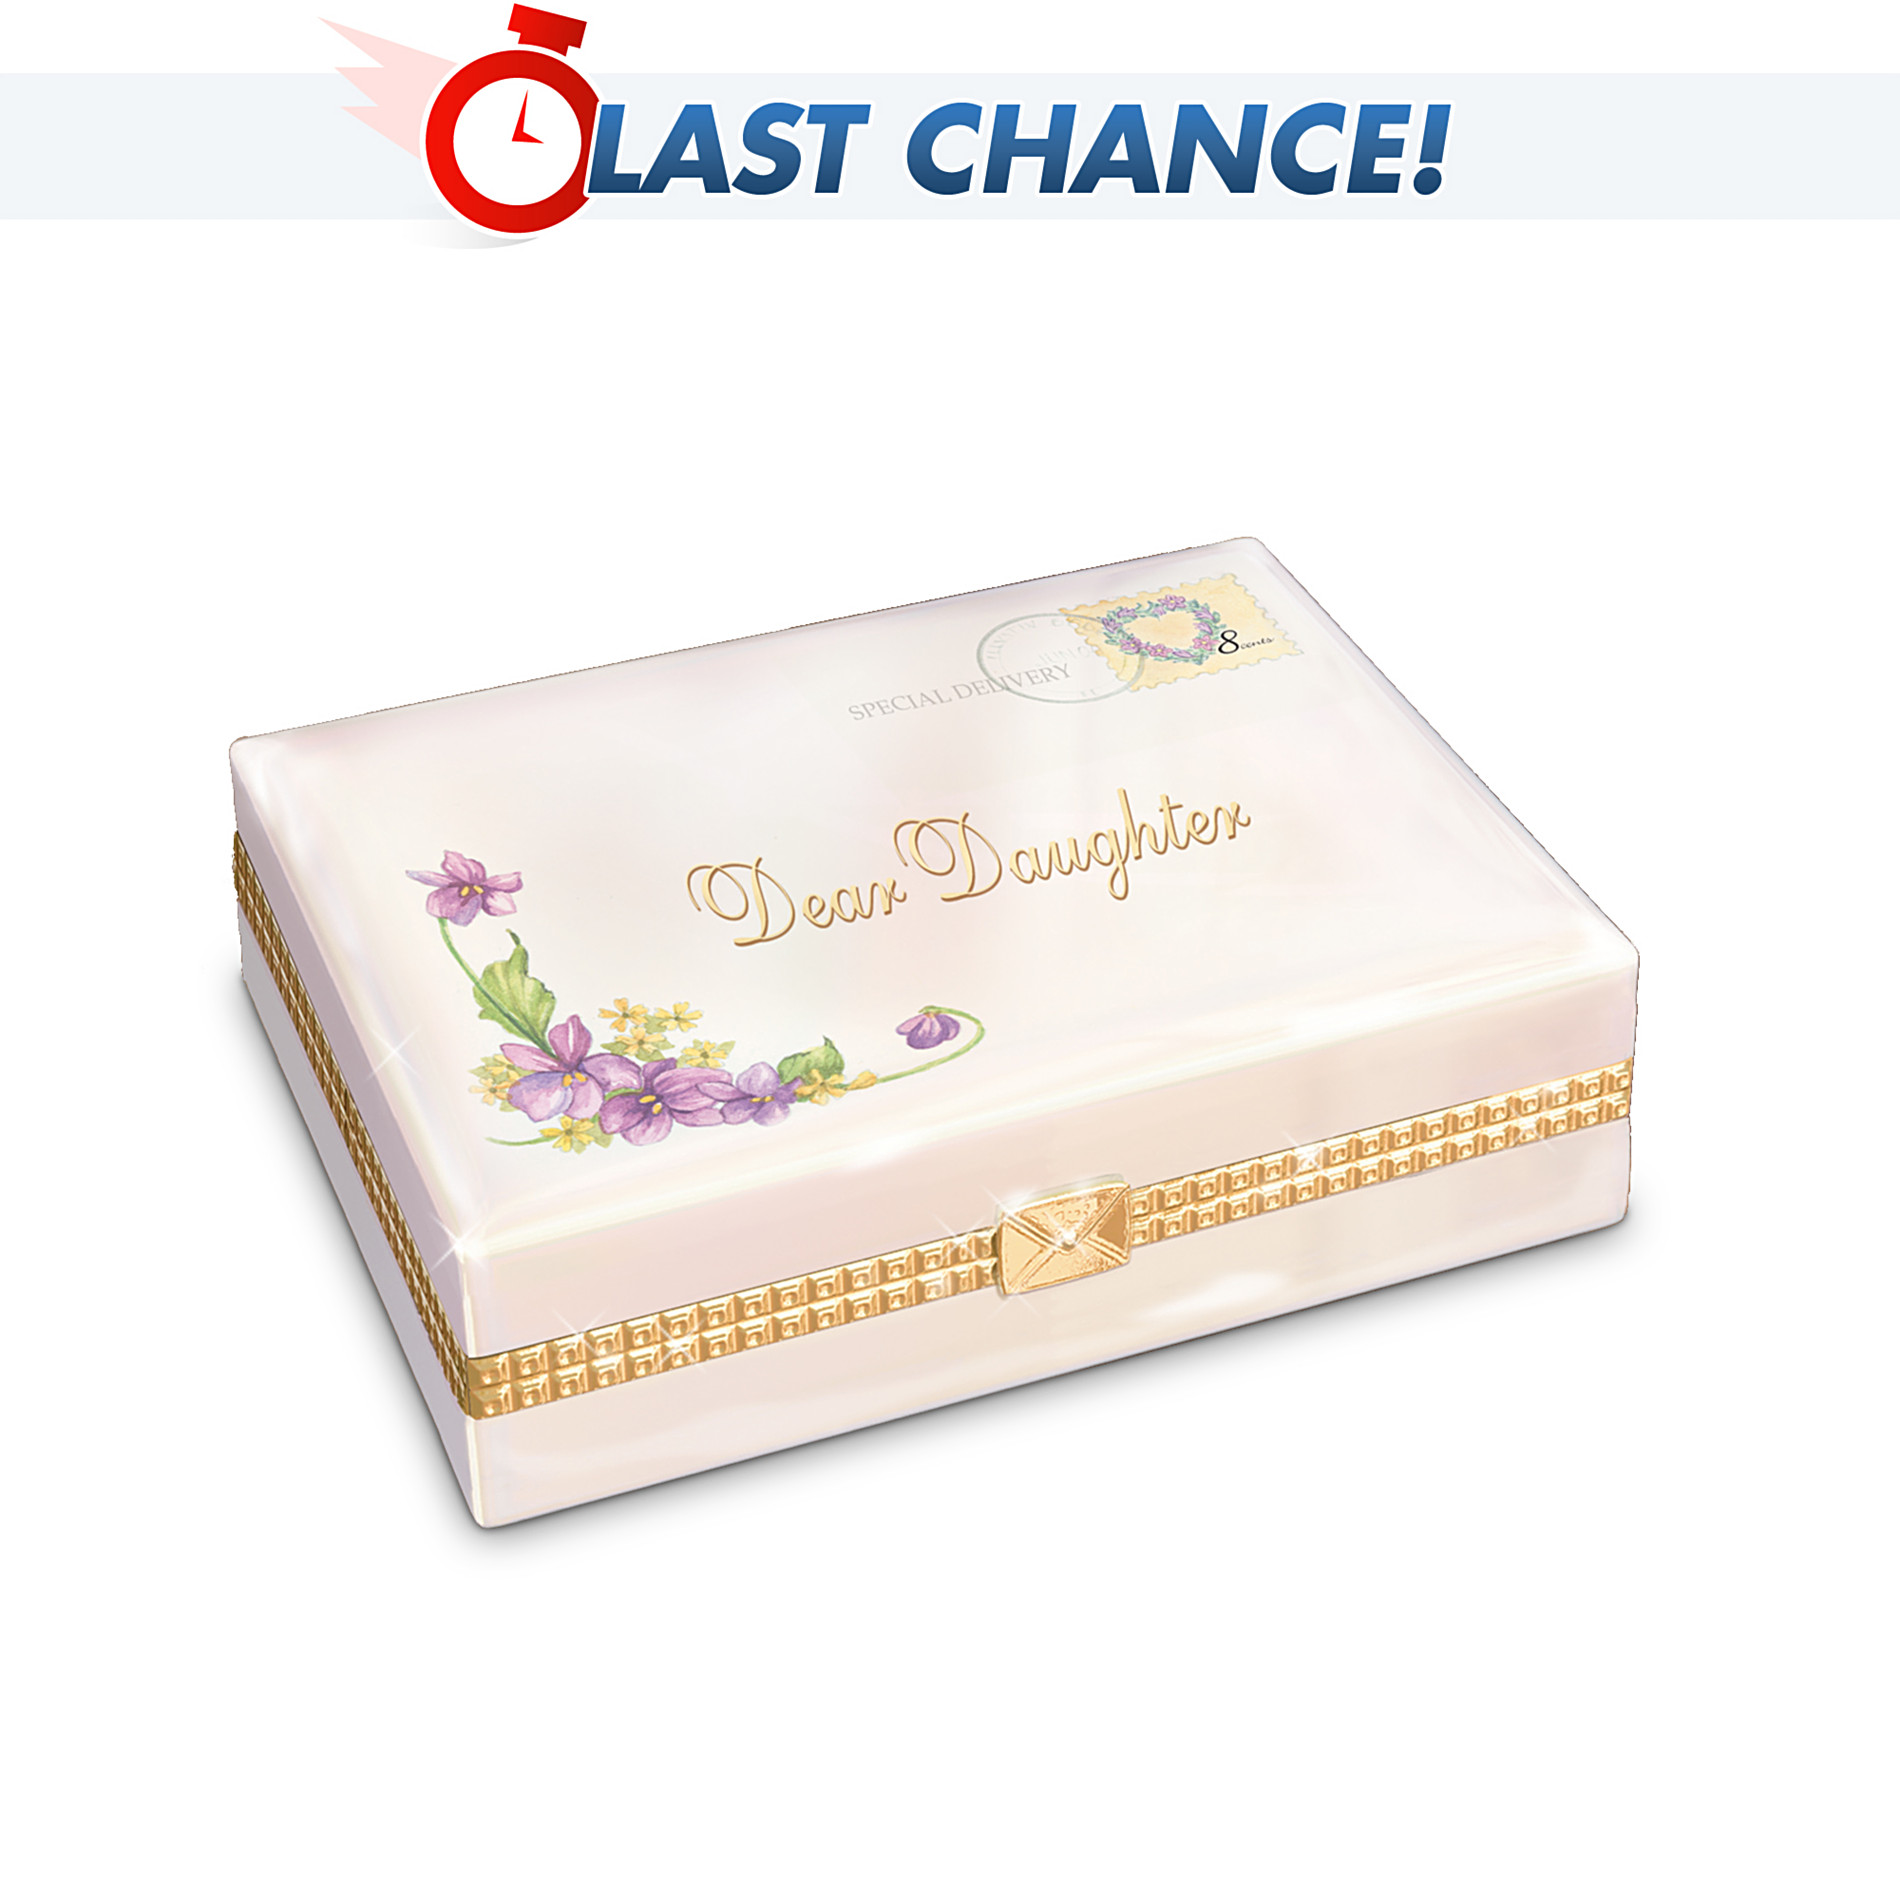 Ardleigh Elliott Dear Daughter Collectible Porcelain Music Box Gift For Daughter at Sears.com